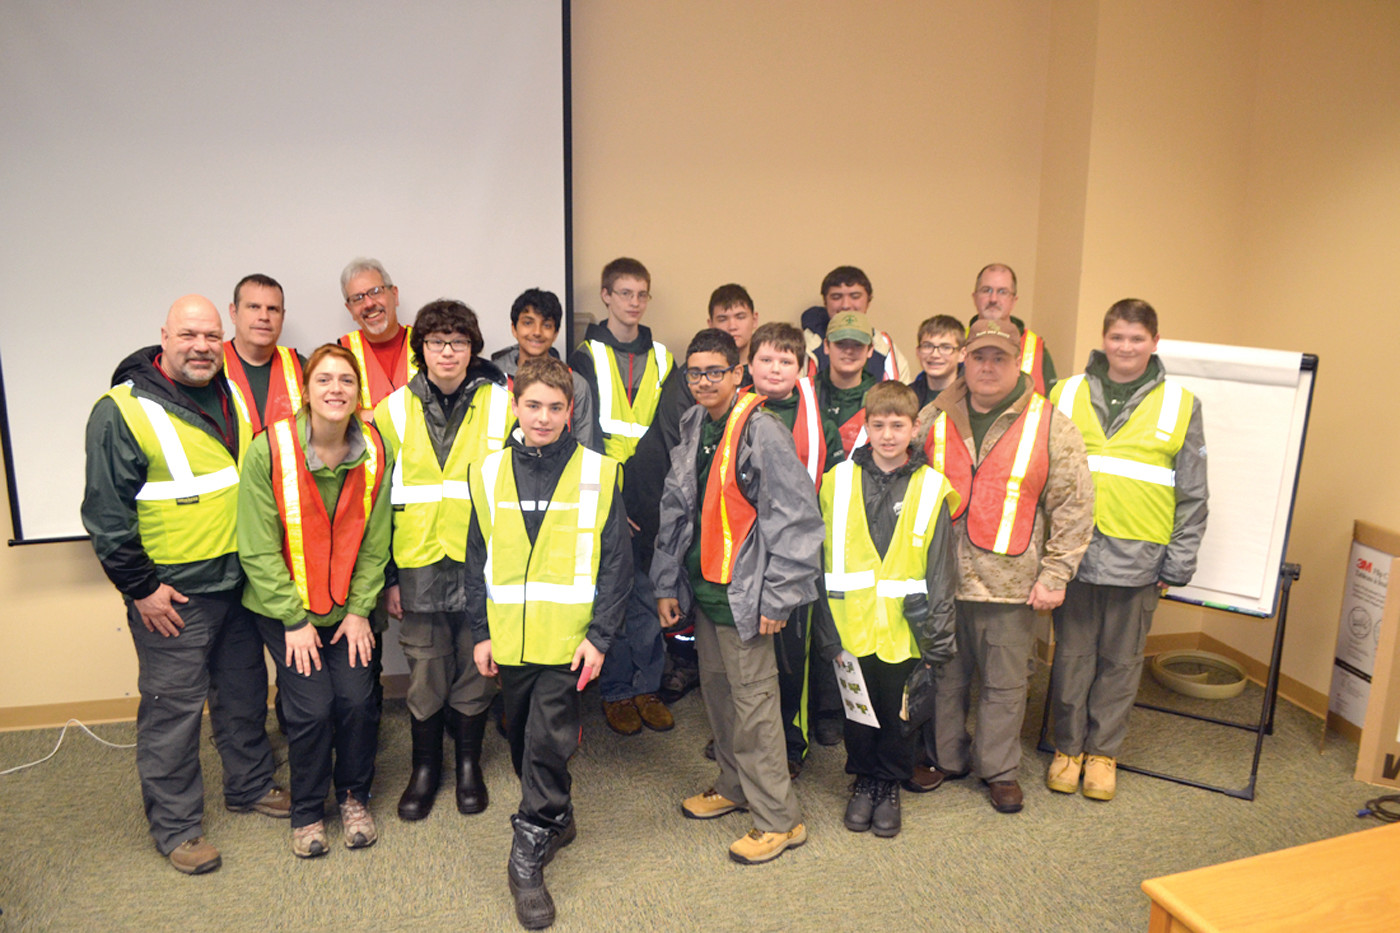 DOING A GOOD DEED: Scouts of Troop 14 Bellingham recently discovered that life finds a way at the Johnston Central Landfill as part of their community service efforts.